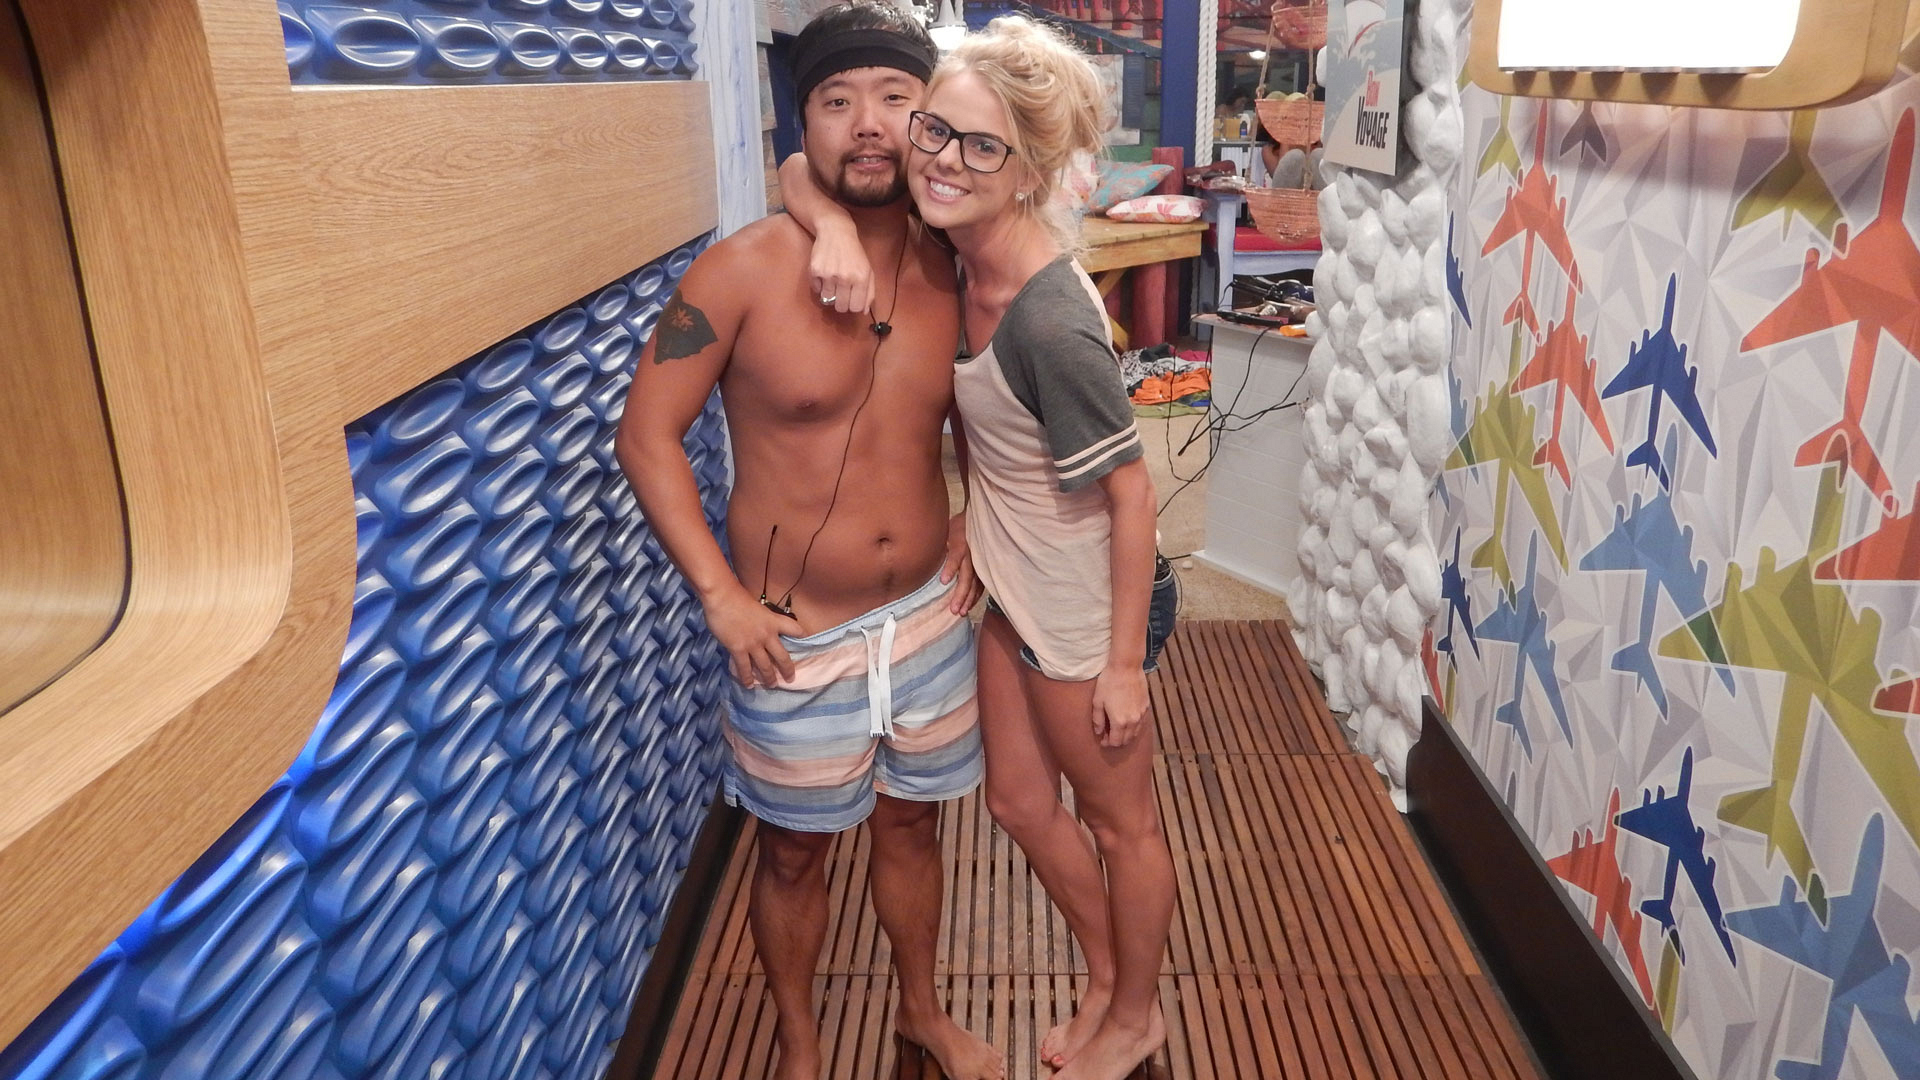 It's just another day in the BB18 house.